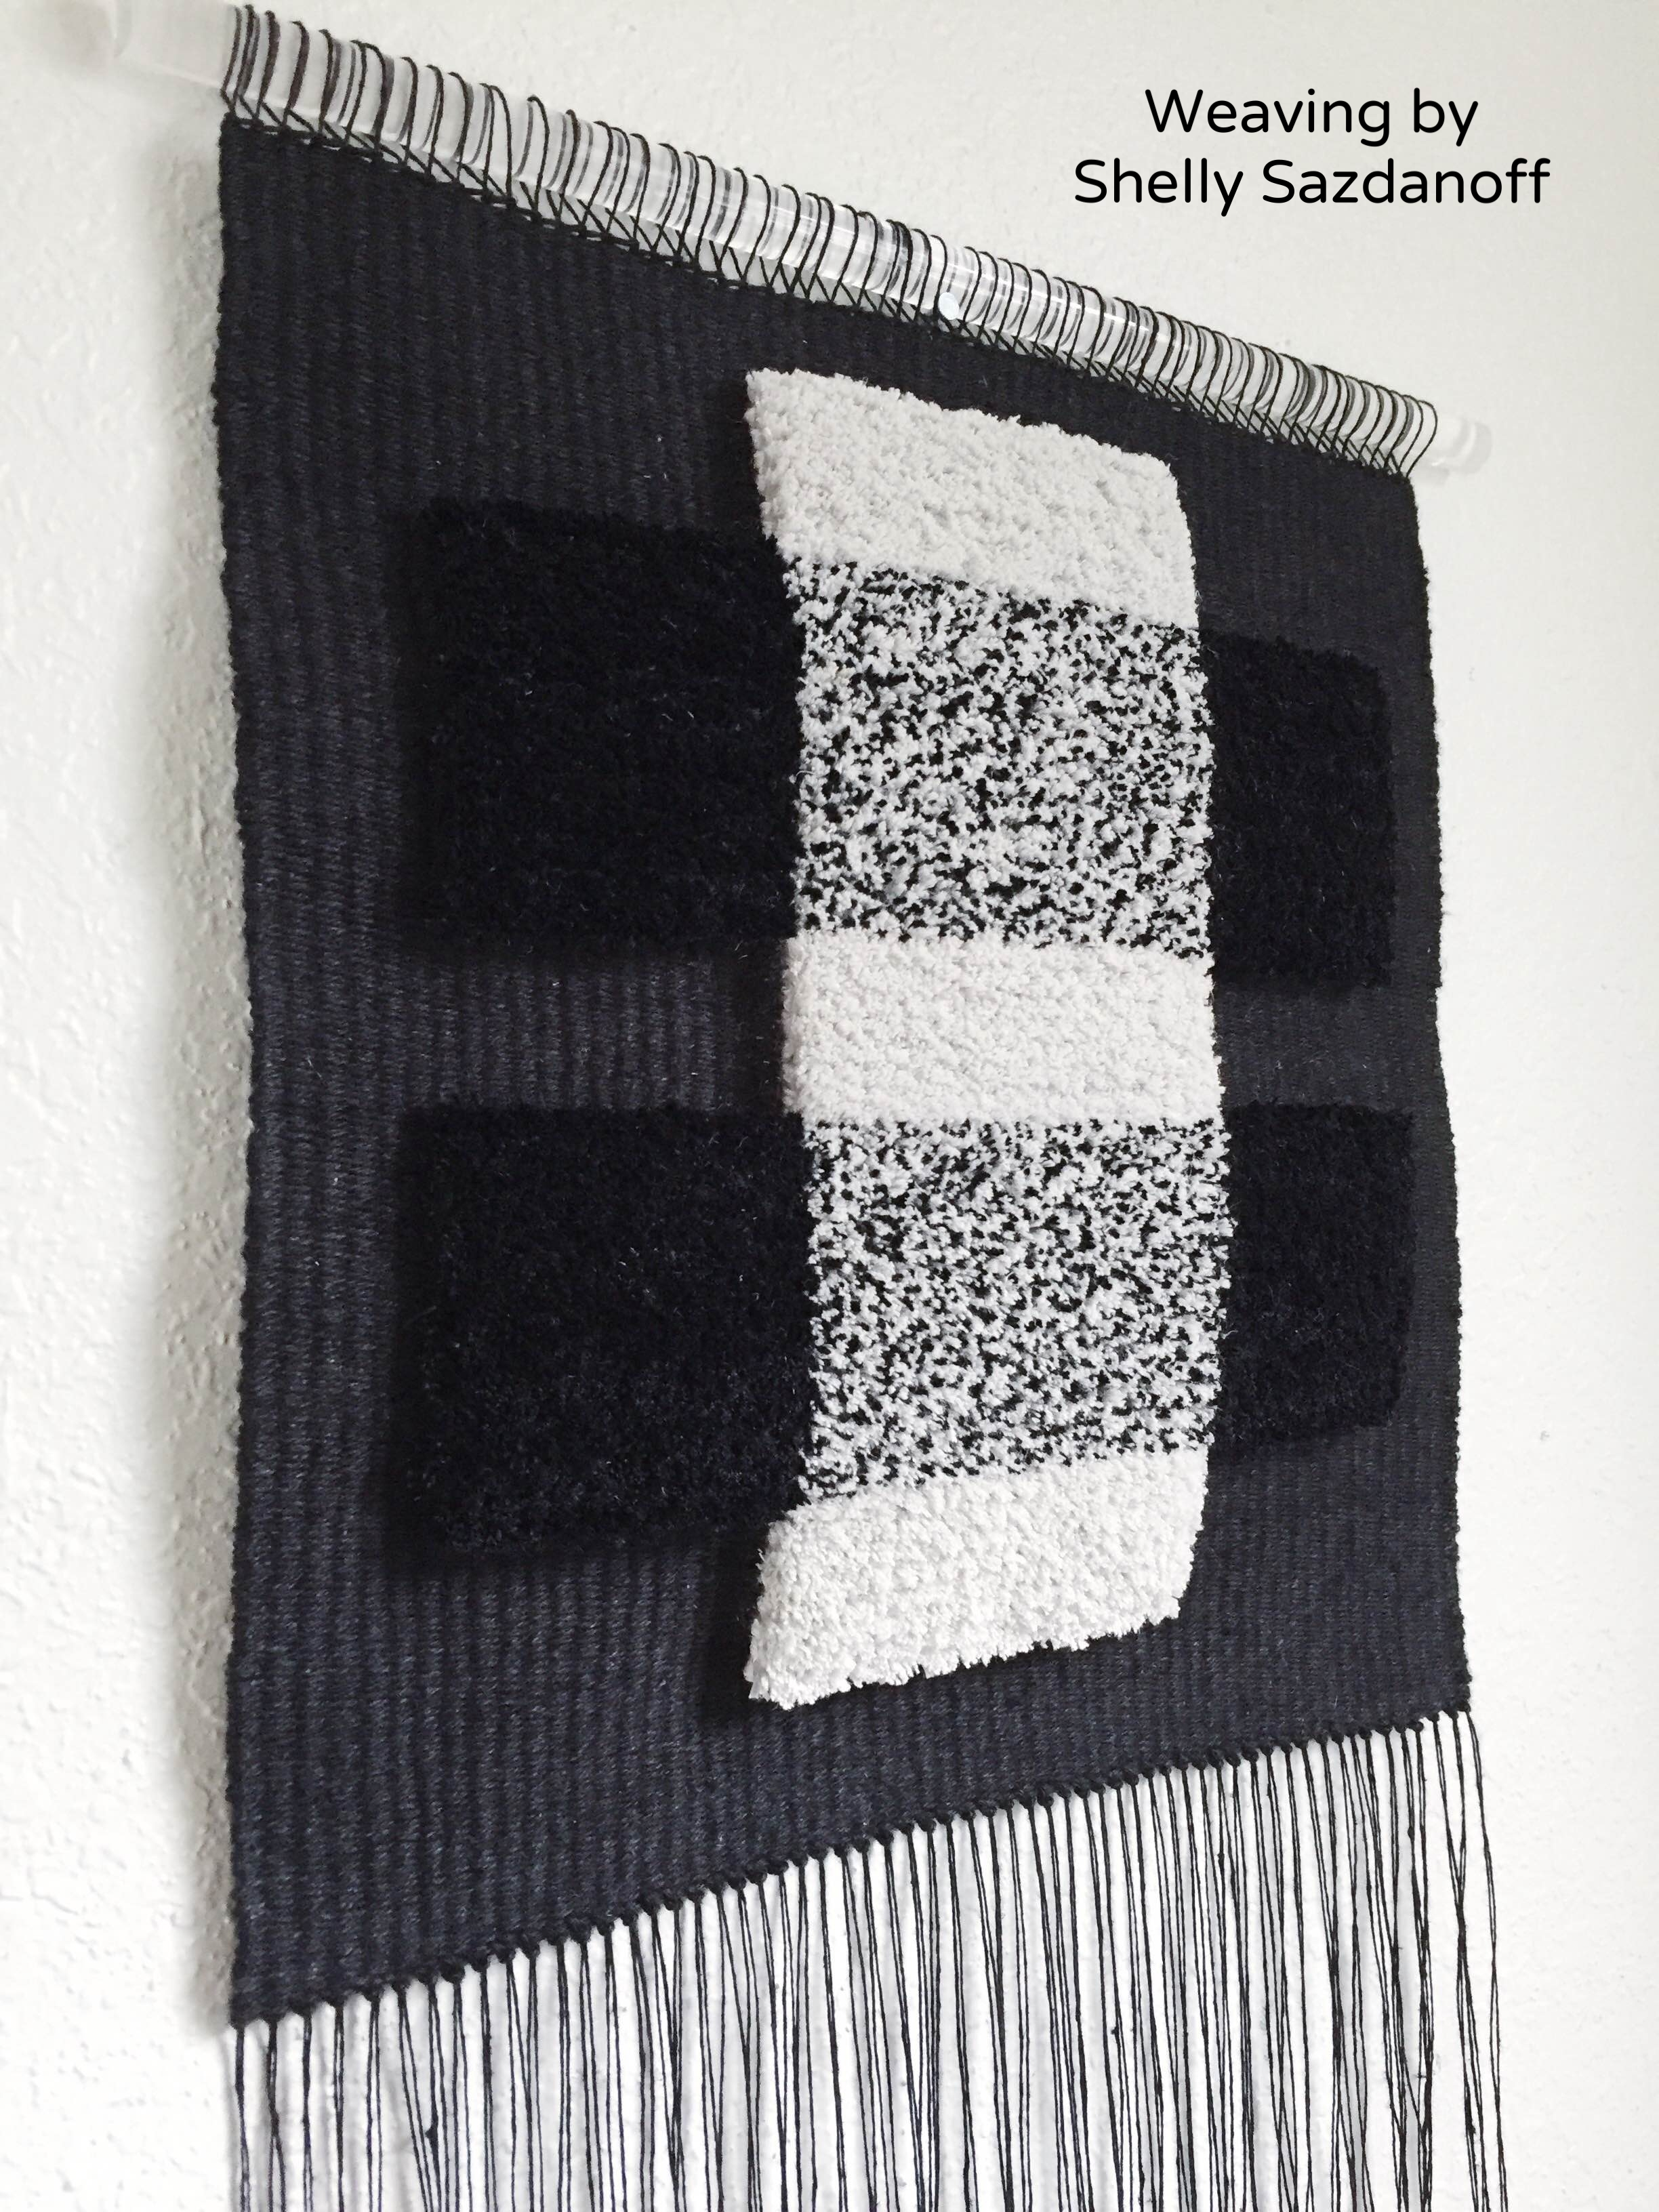 Weaving by Shelly Sazdanoff